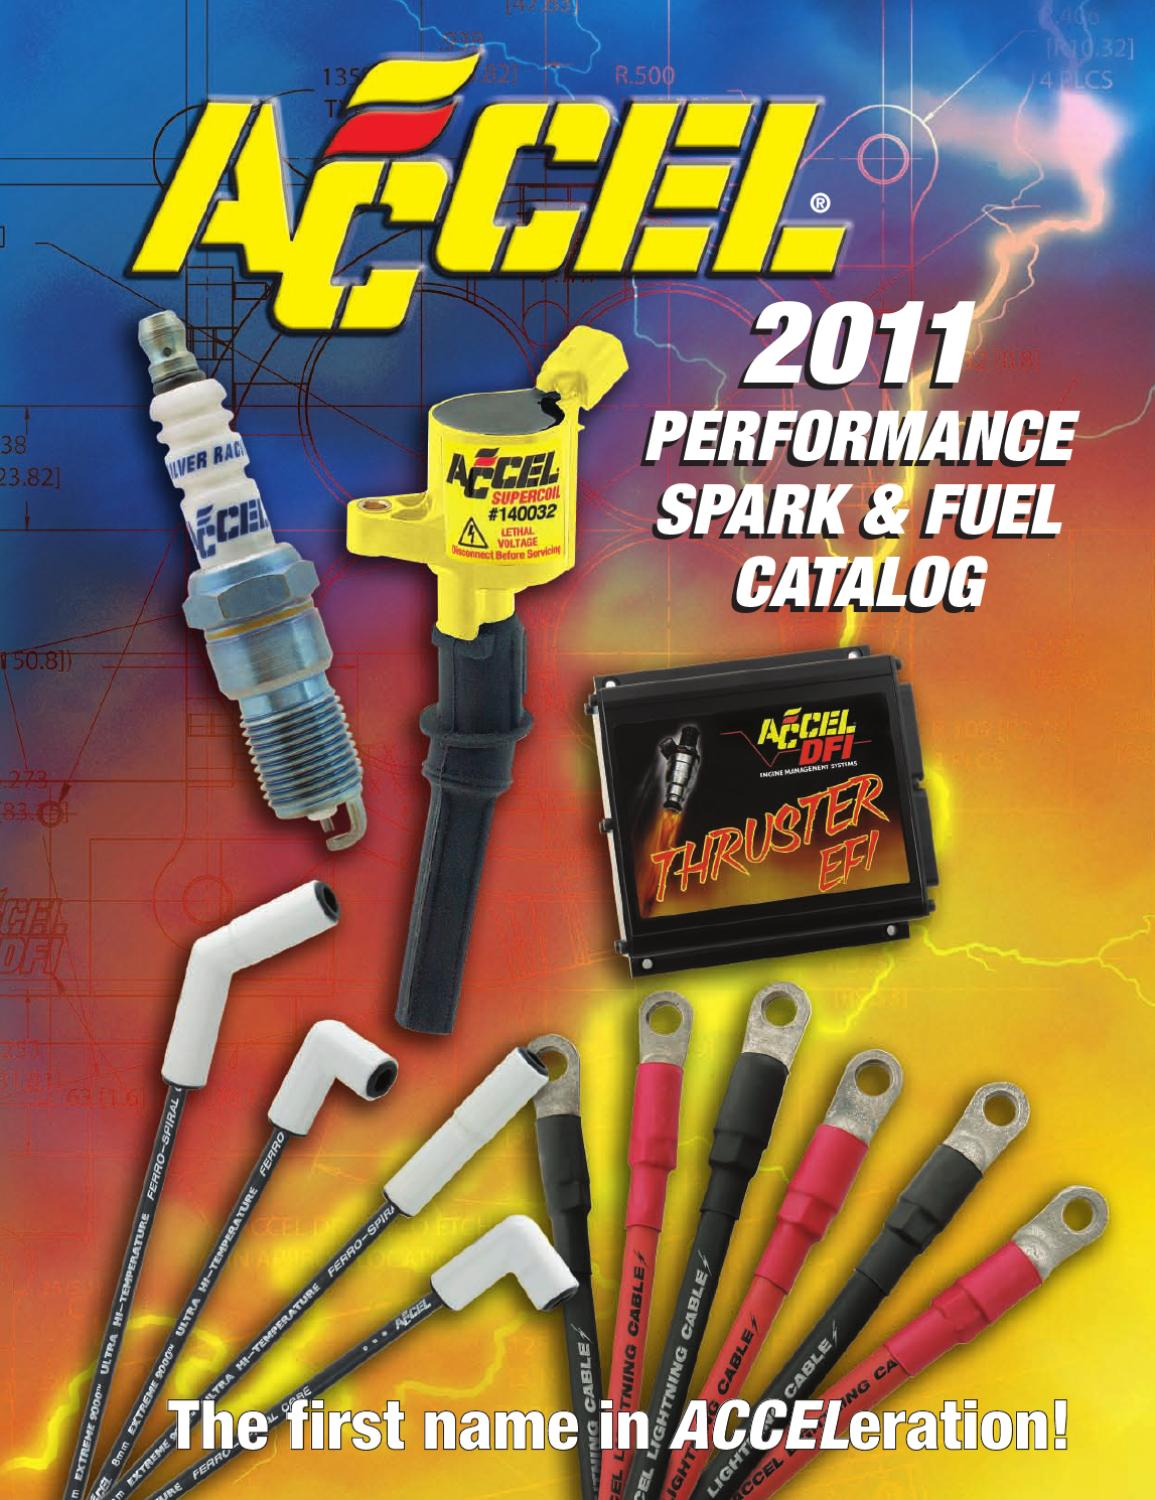 Accel Catalog By Kepler Diaz Vilca Issuu Wiring Diagrams Of 1964 Plymouth 6 And V8 Savoy Belvedere Fury Part 2